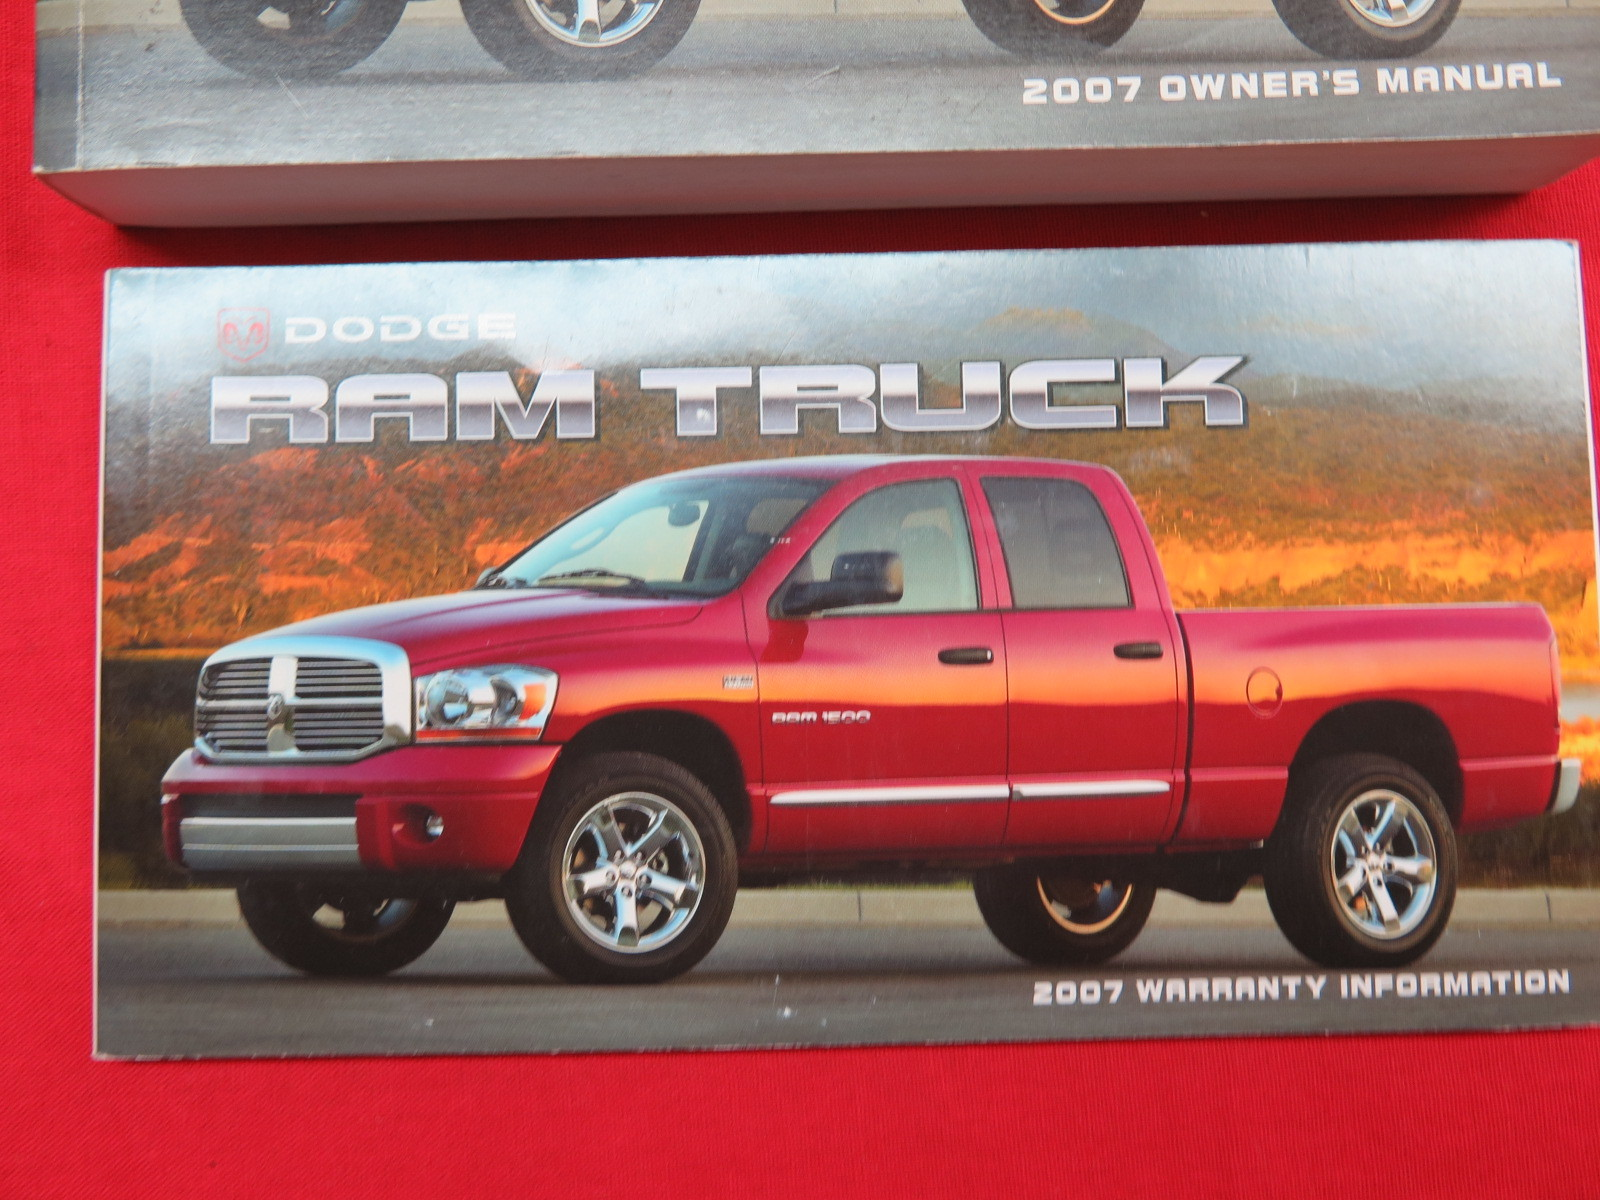 2007 Dodge Ram Truck Owners Manual Guide Book | eBay